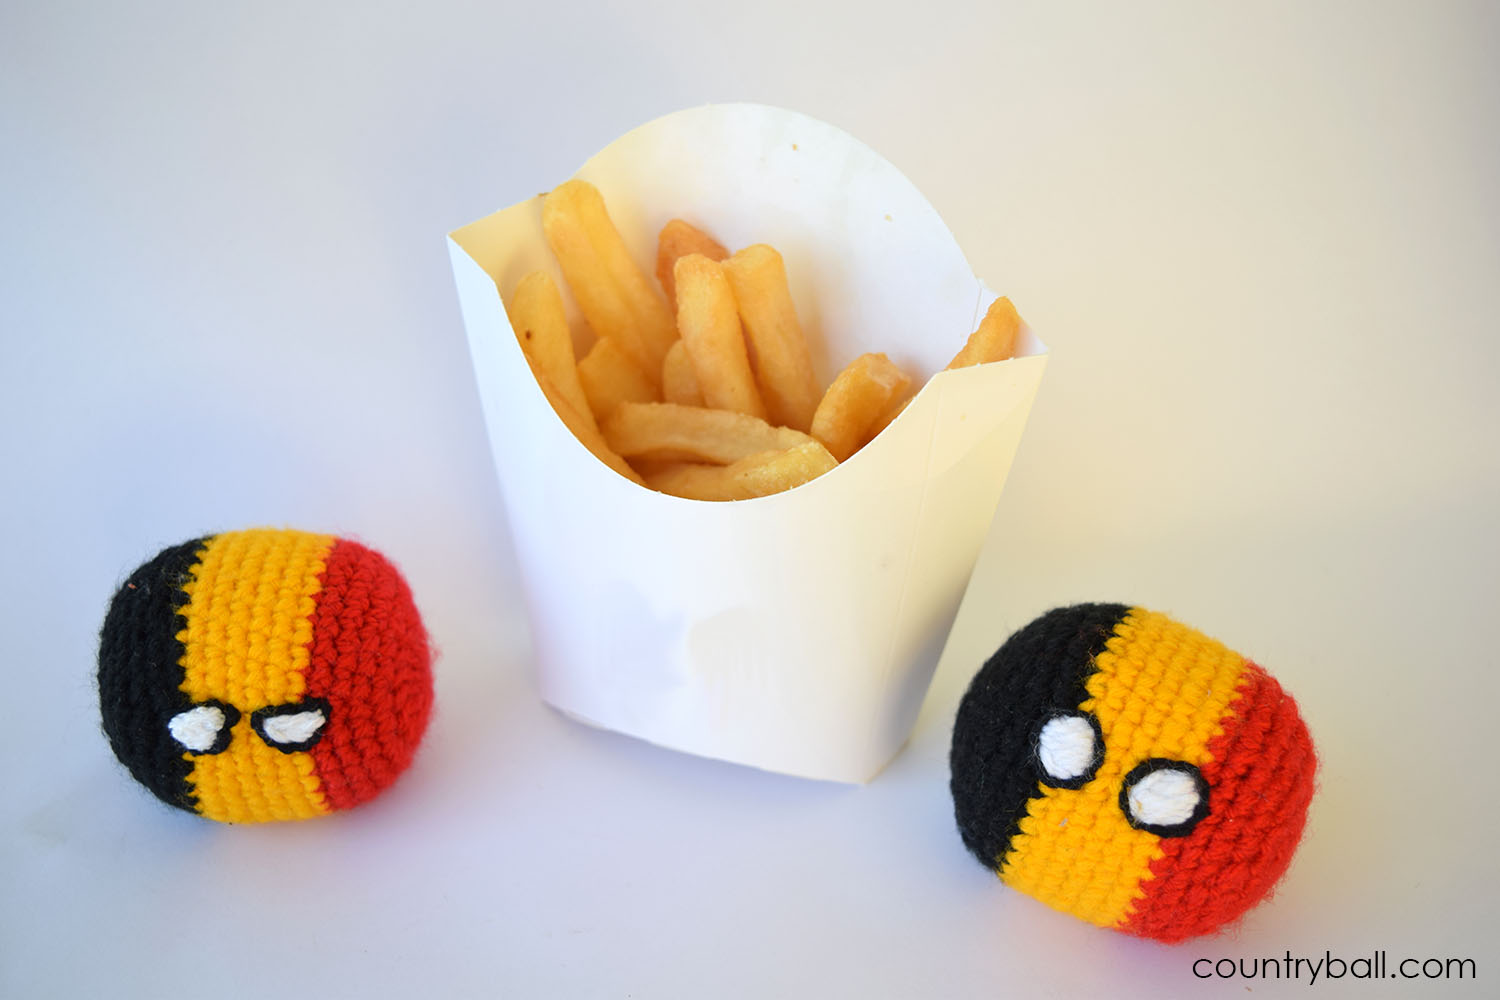 Belgiumball, the inventor of French Fries